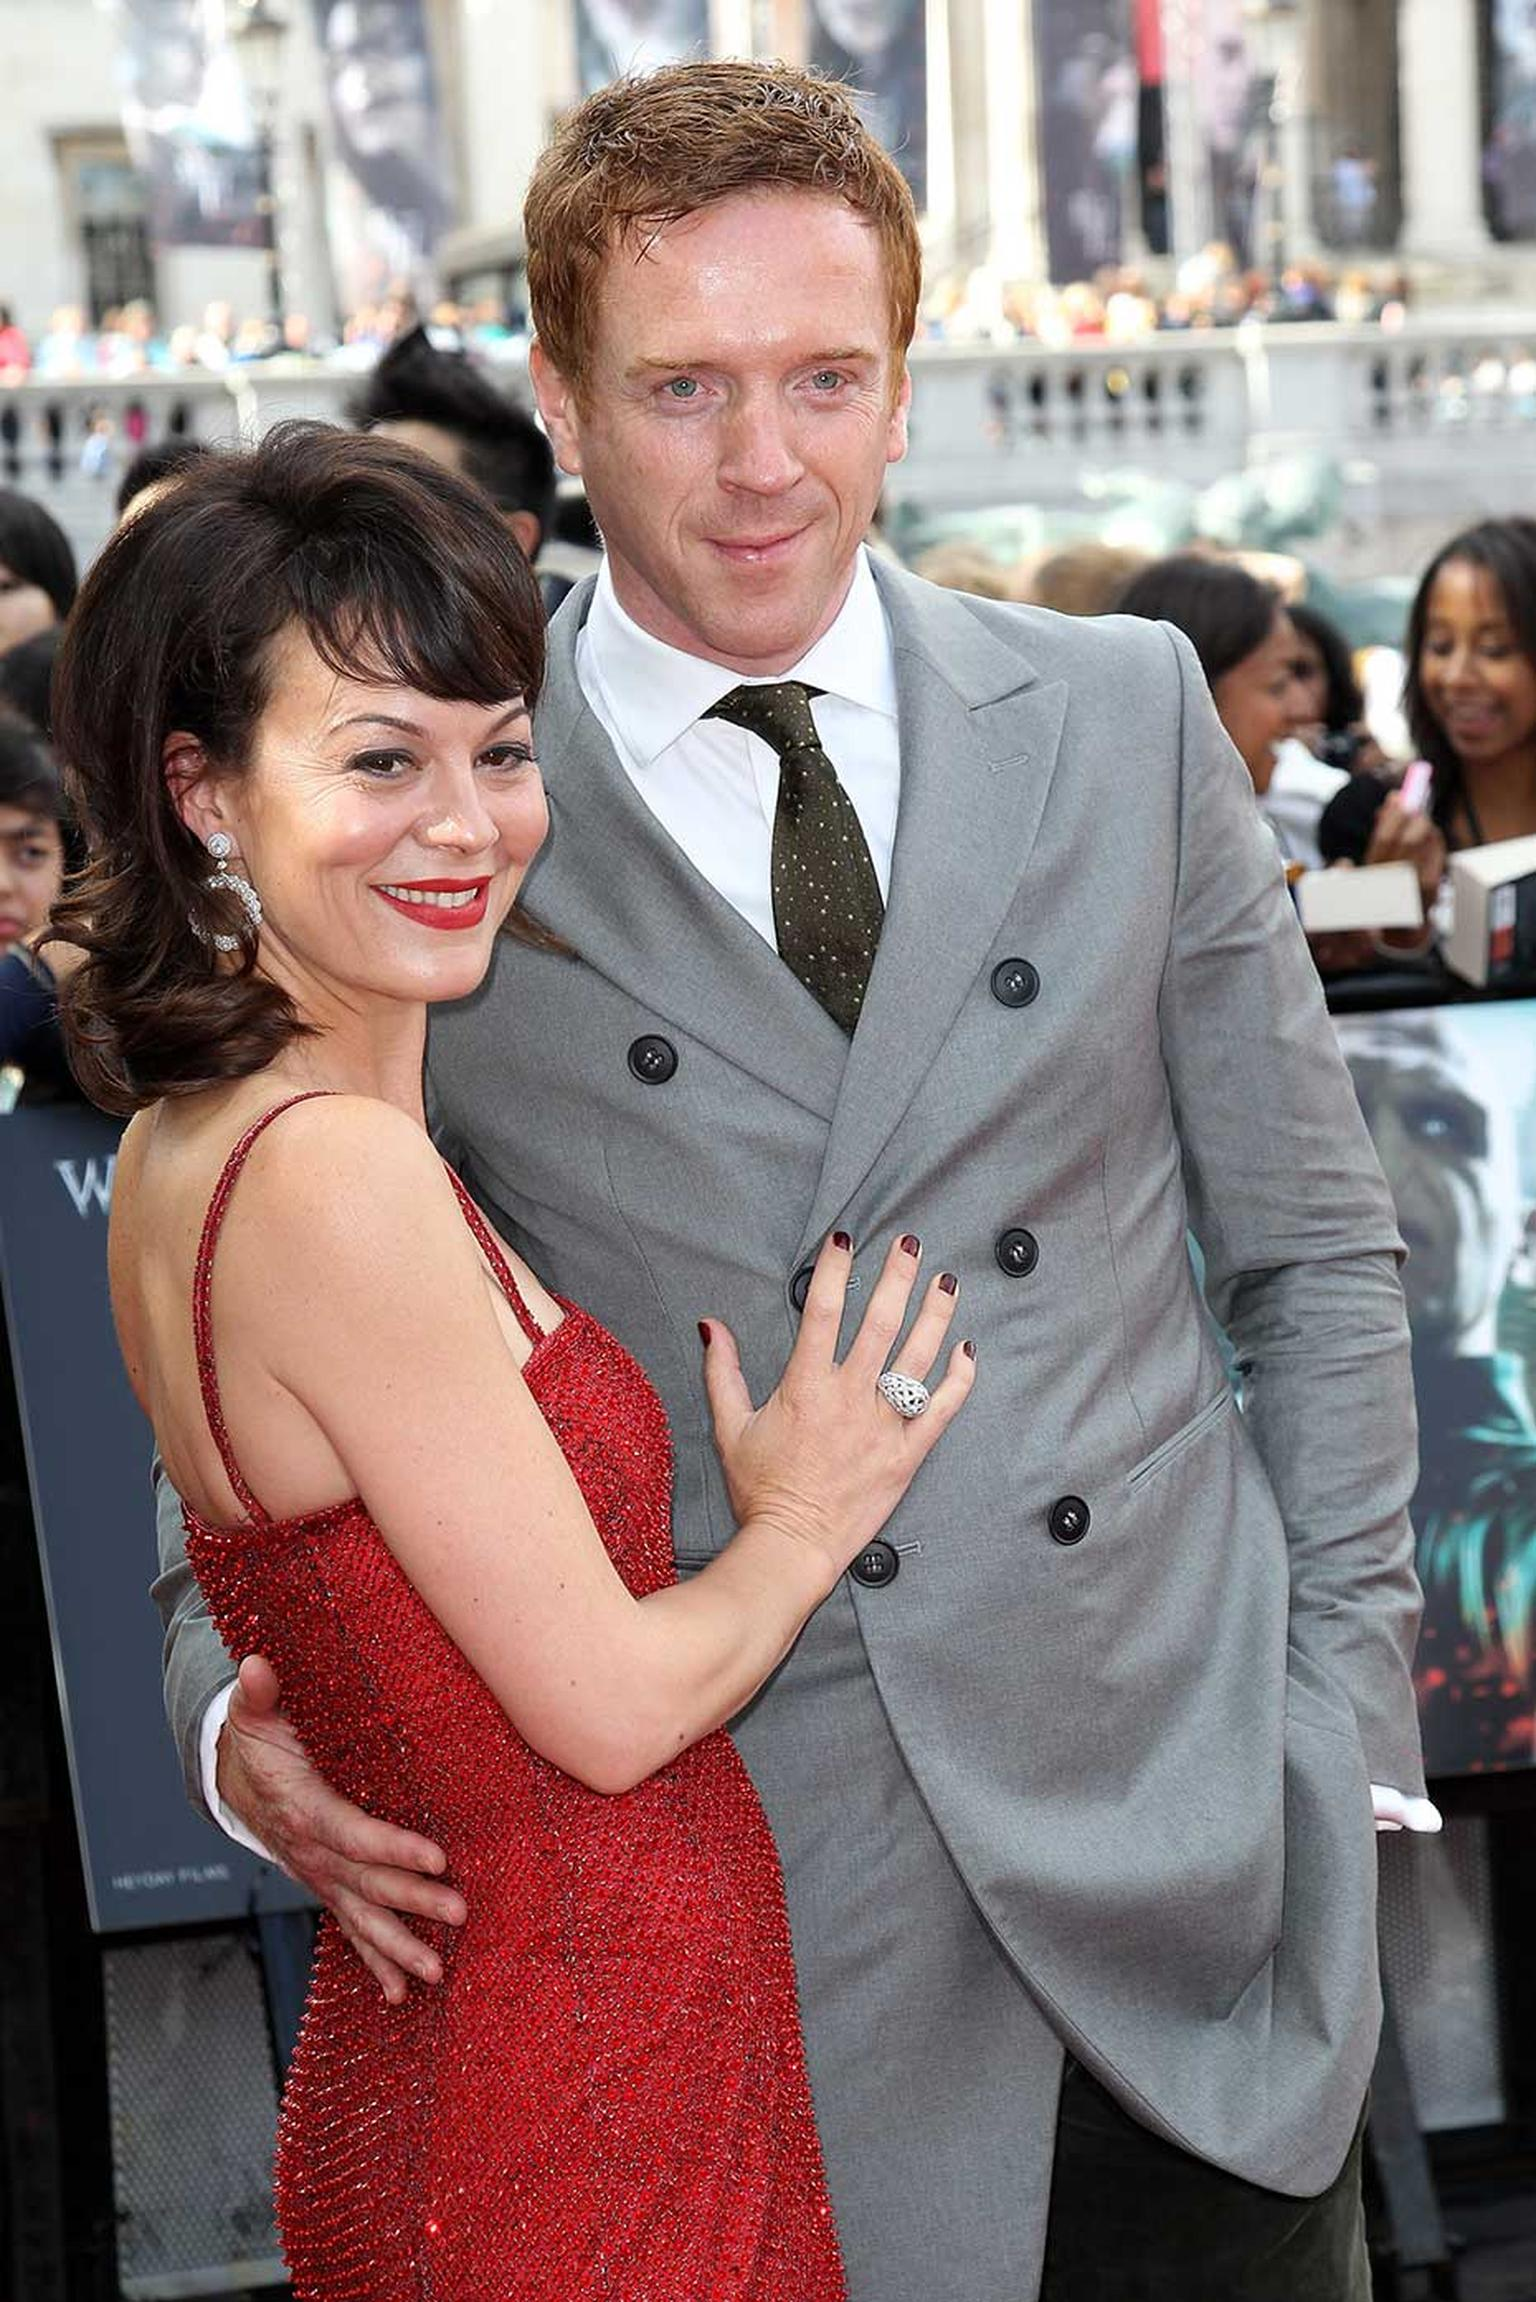 Helen McCrory wearing a David Morris Rose-Cut ring and earrings alongside husband Damian Lewis at the premiere of Harry Potter and the Deathly Hallows.